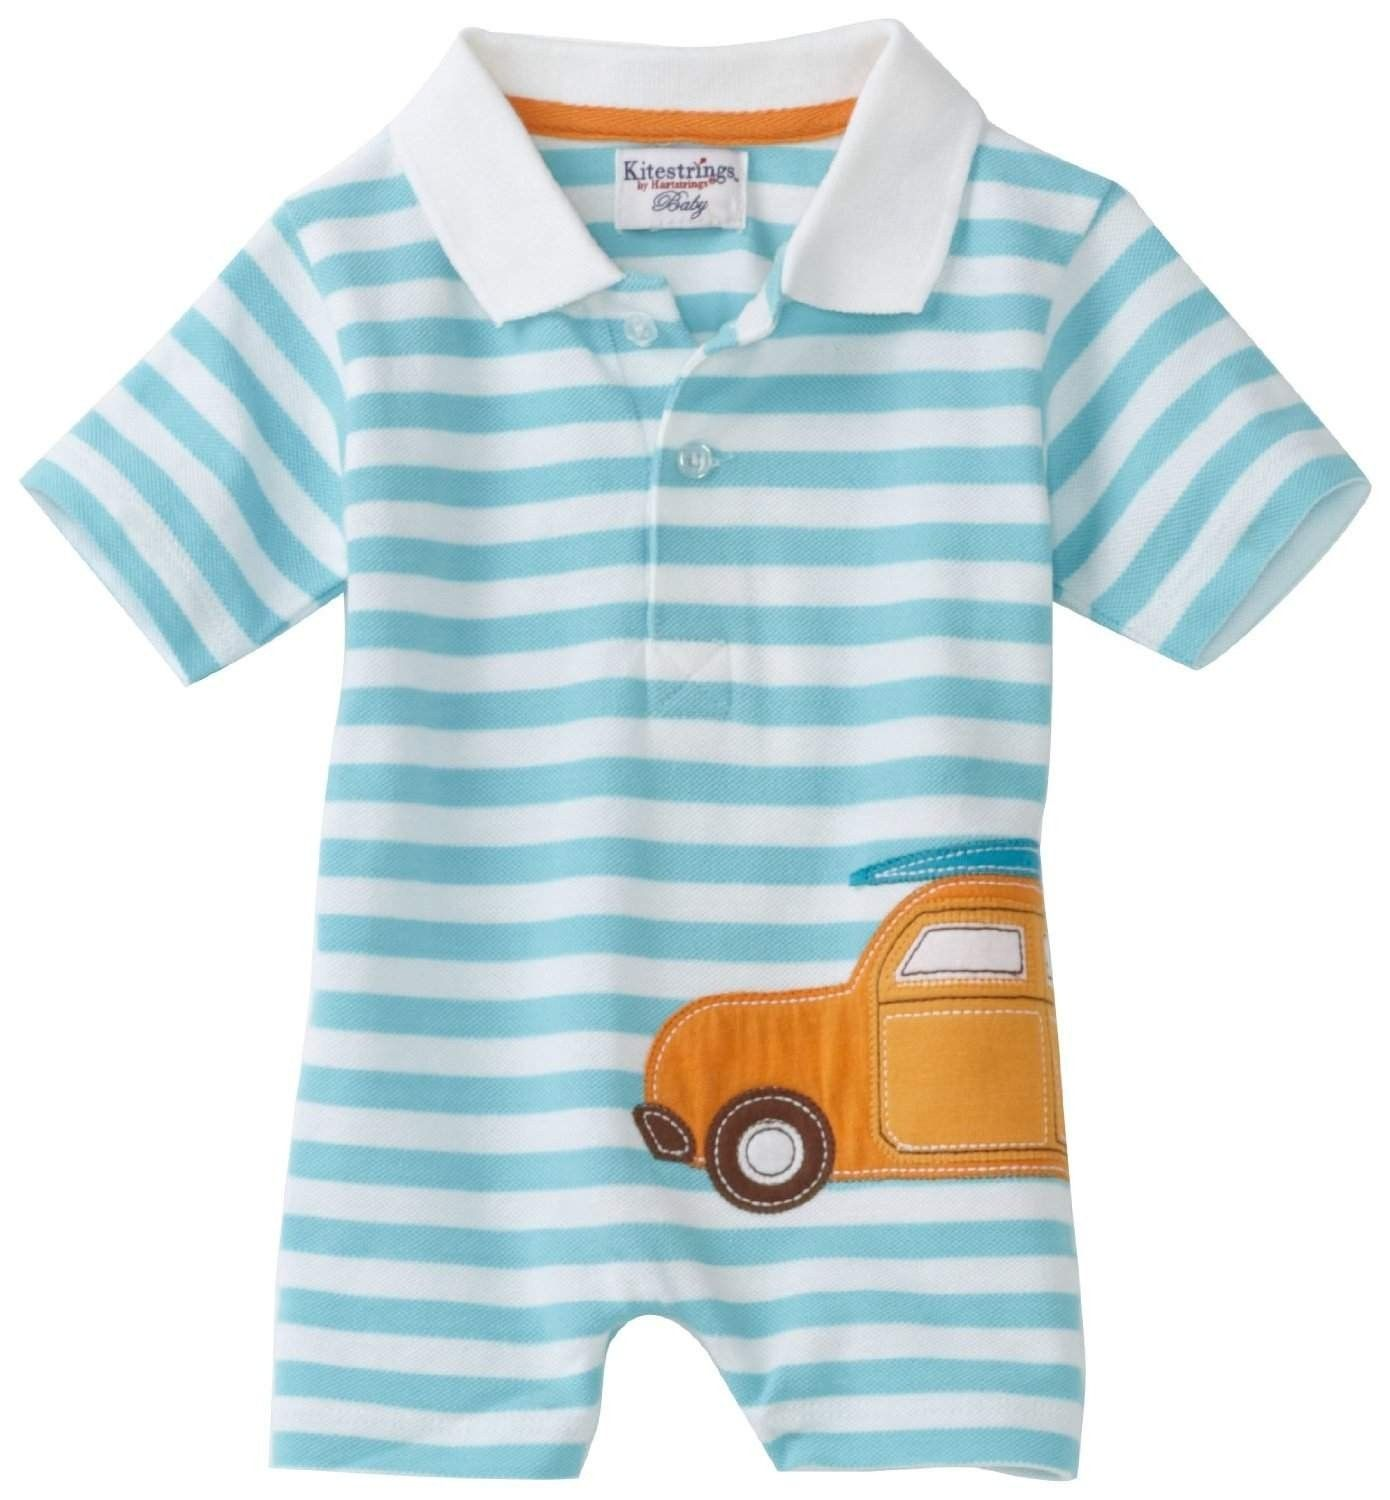 17 Best images about Baby clothes on Pinterest | Rompers, Babies ...